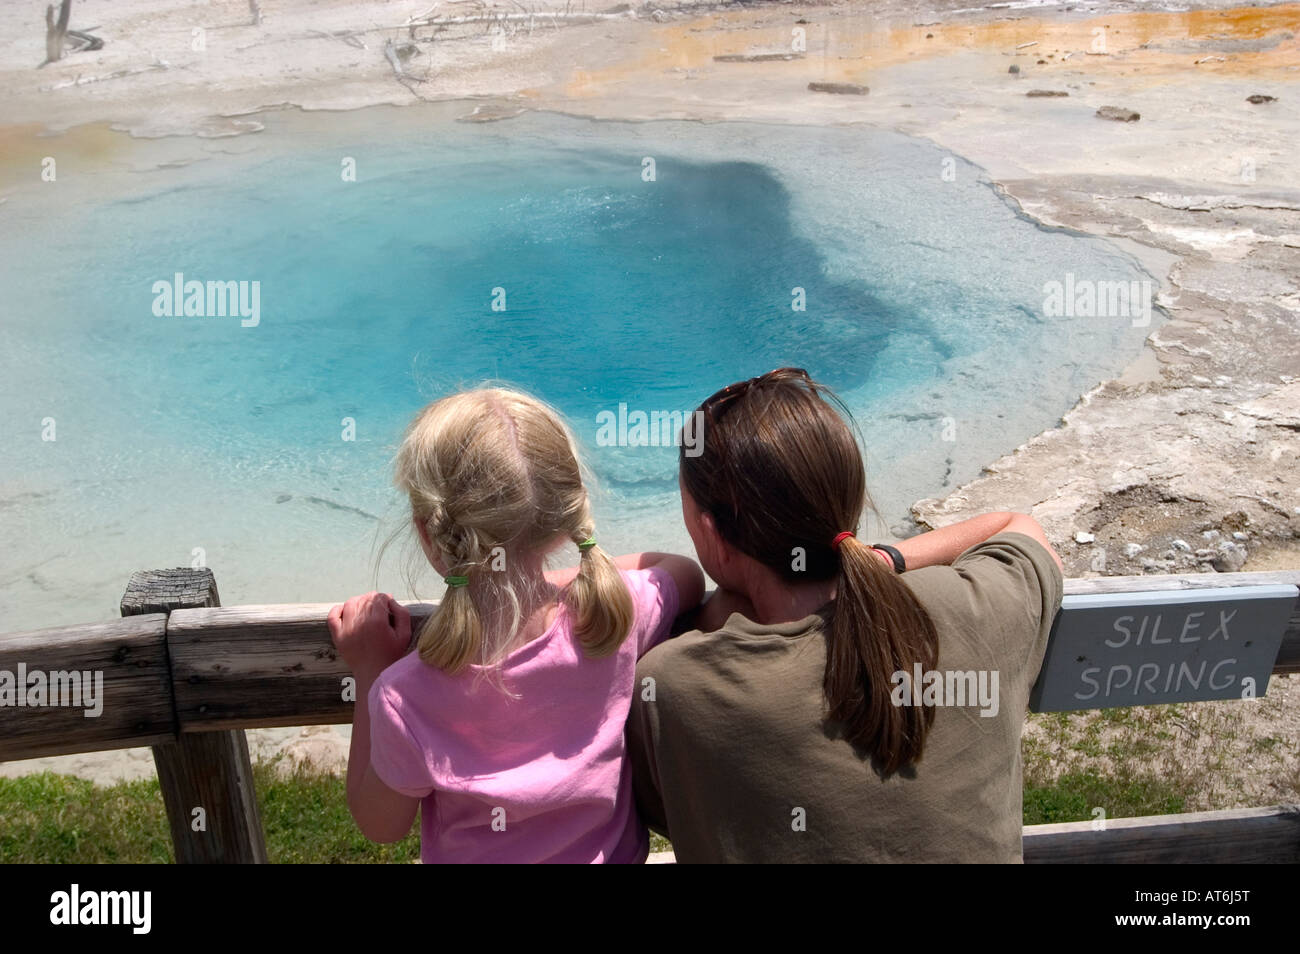 The water is scalding in Silex Spring in Lower Geyser Basin hot springs in Yellowstone National Park, WY. Stock Photo